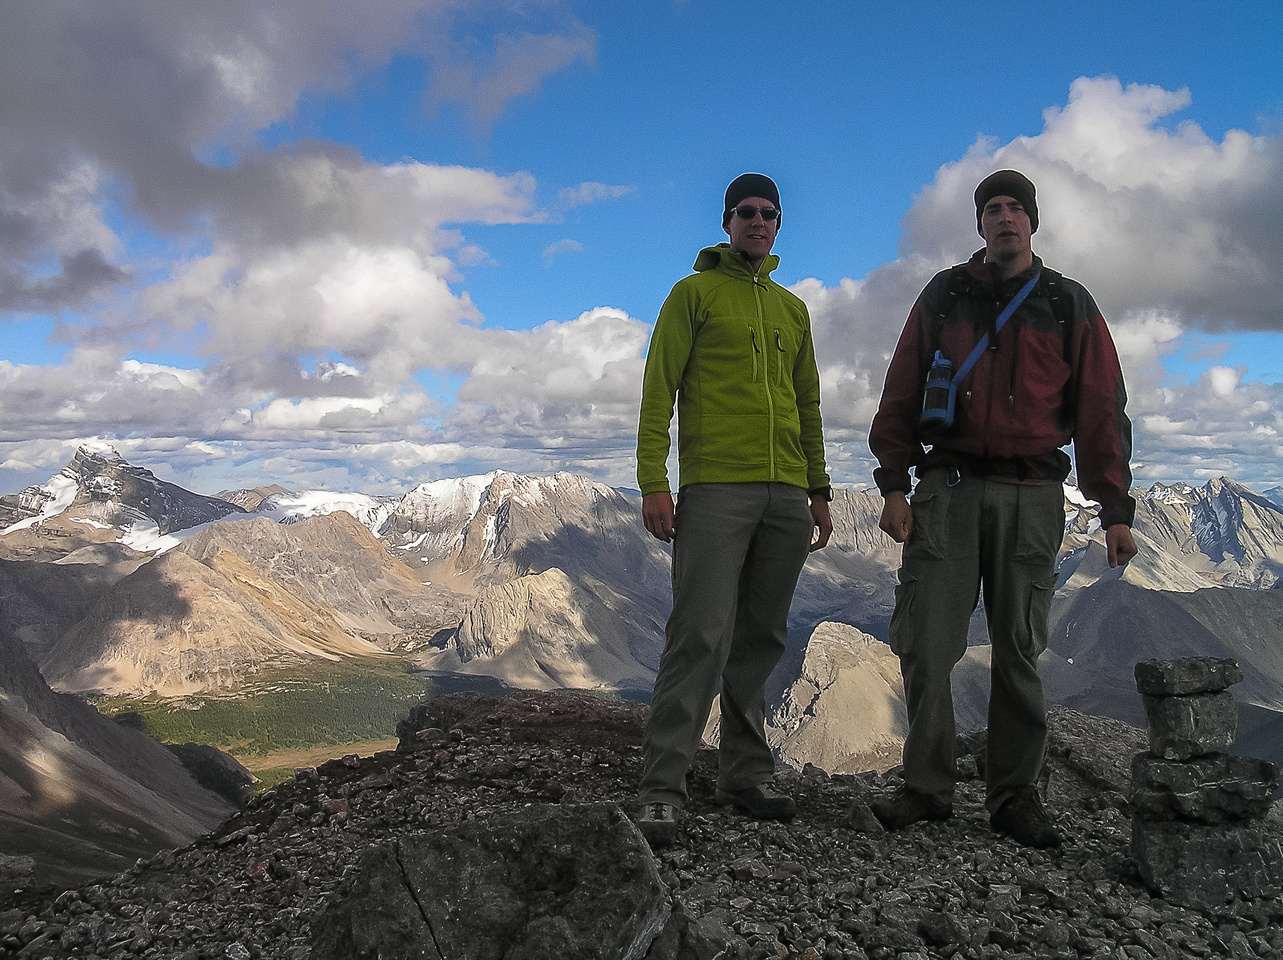 Vern and Jon on the summit of Ptarmigan Peak.